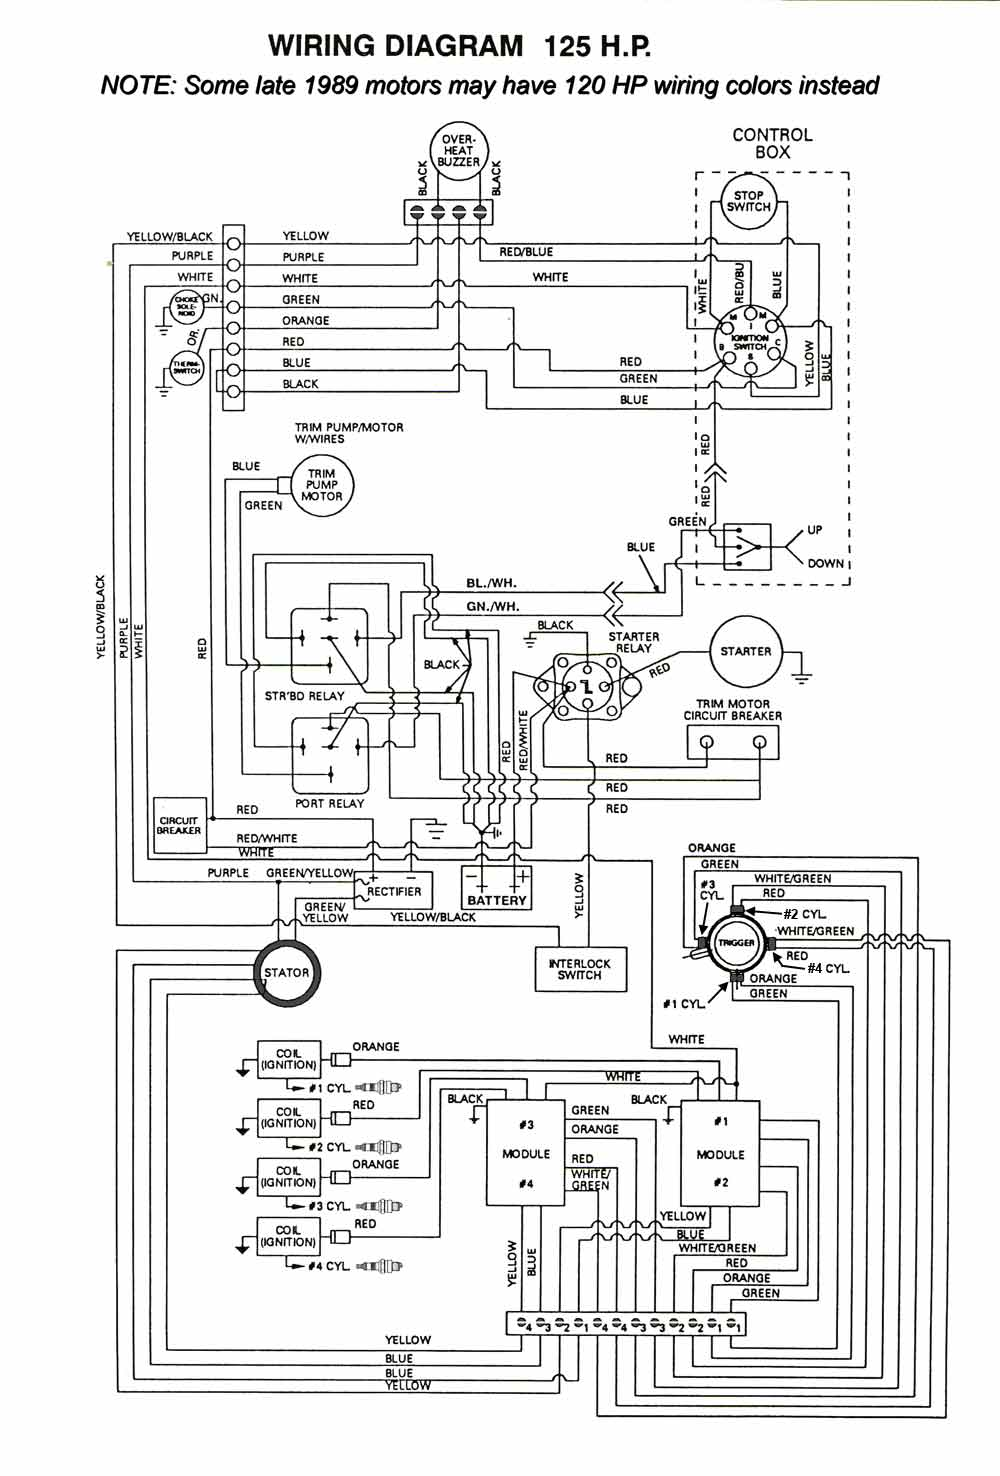 Surprising Johnson 50 Hp Wiring Diagram Free Picture Wiring Diagram Wiring Cloud Inamadienstapotheekhoekschewaardnl